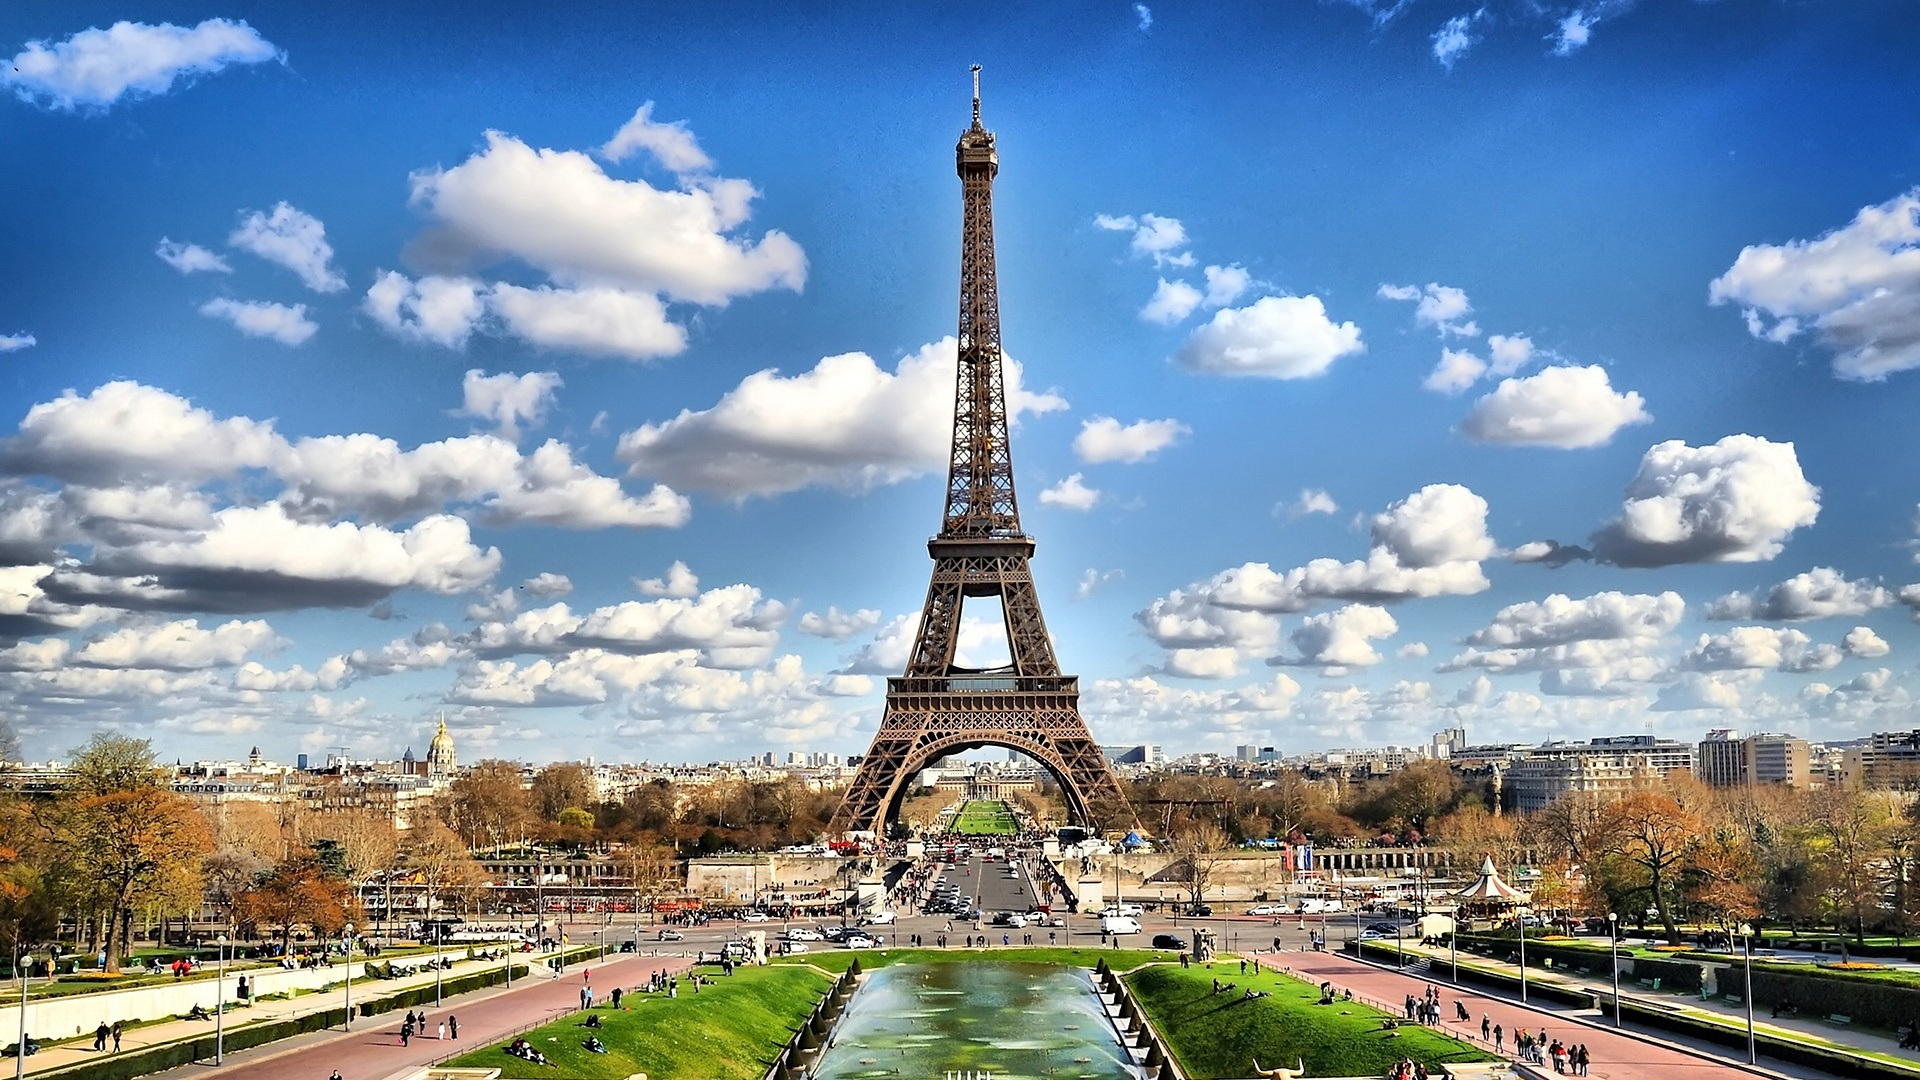 Paris Eiffelturm Wallpaper Paris Eiffelturm